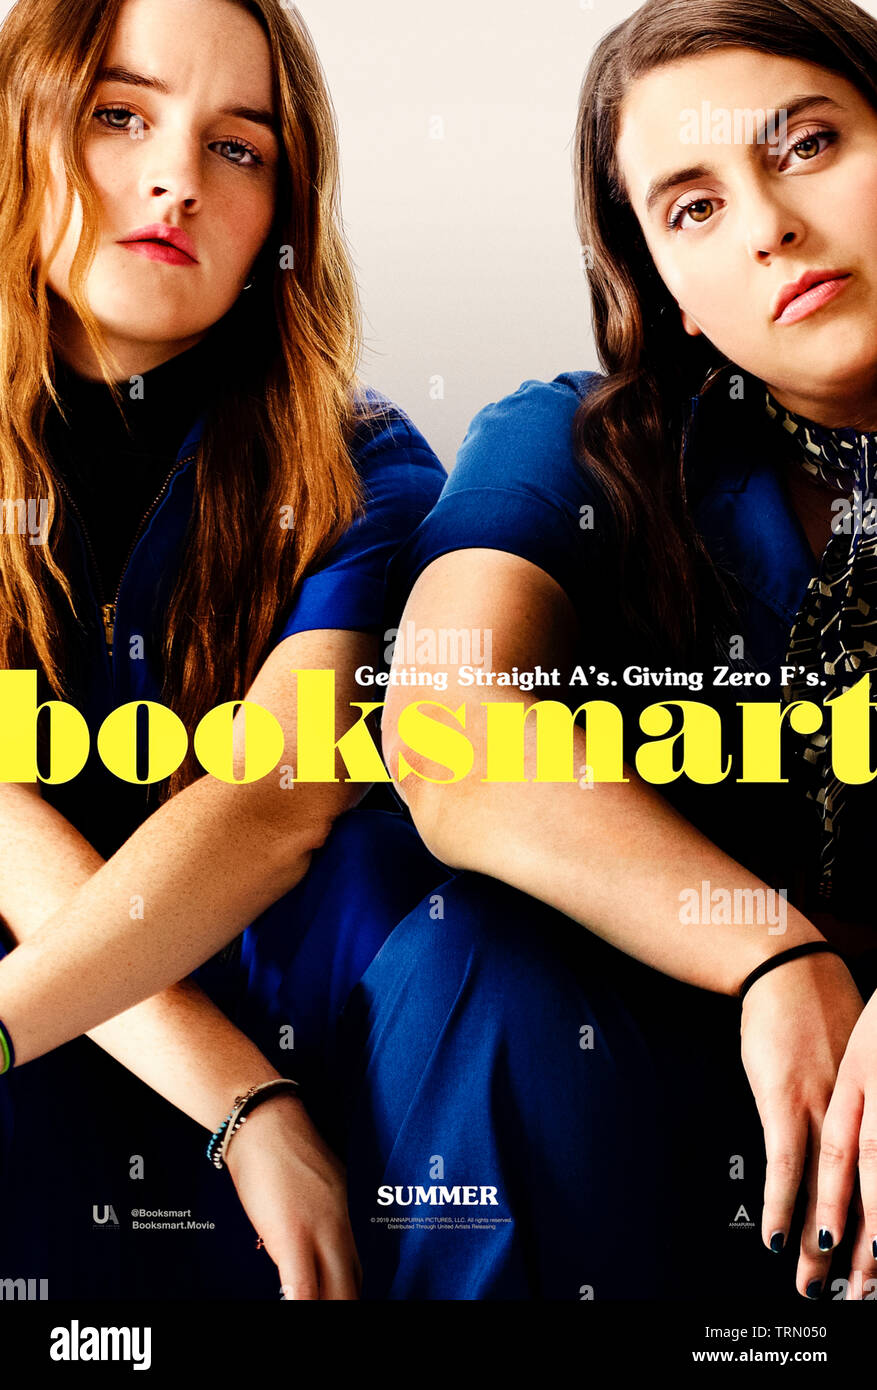 Booksmart (2019) directed by Olivia Wilde and starring Kaitlyn Dever, Beanie Feldstein and Jessica Williams. Two high achievers realise they might have wasted their high school years studying and try and cram in four years of fun into one night. - Stock Image